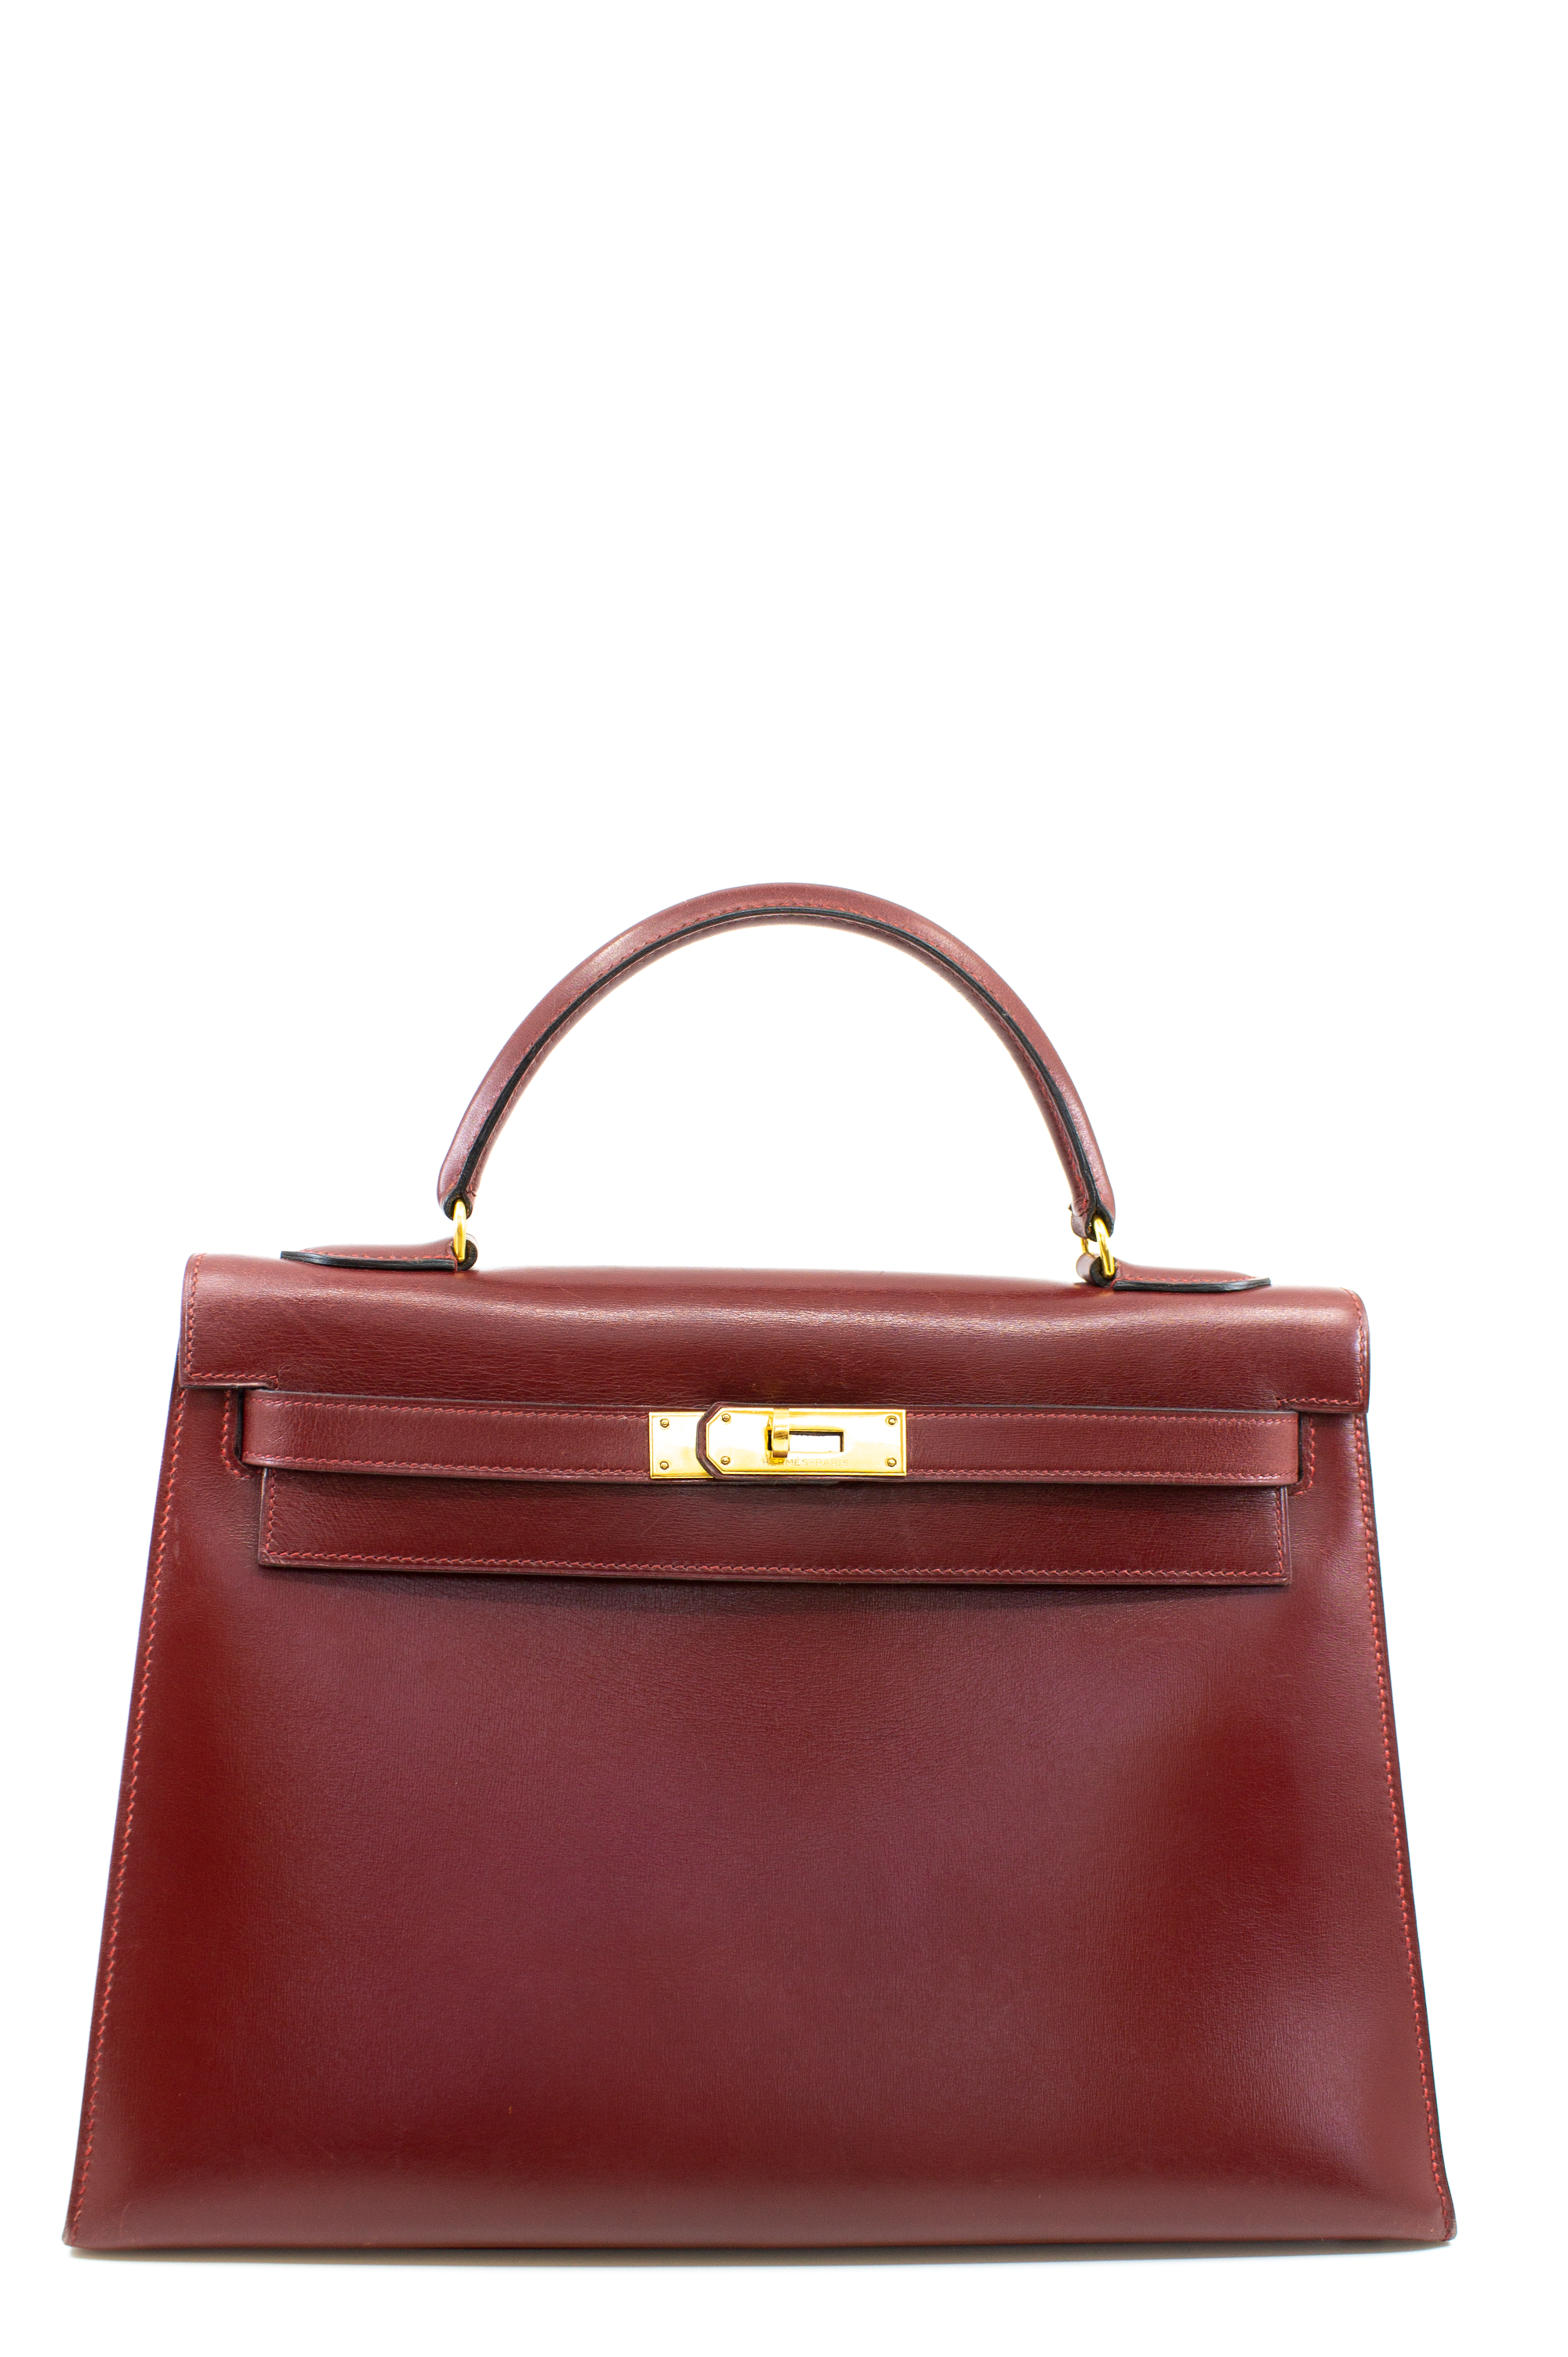 Hermès Kelly 32 Calf Leather Frontalansicht Bordeaux